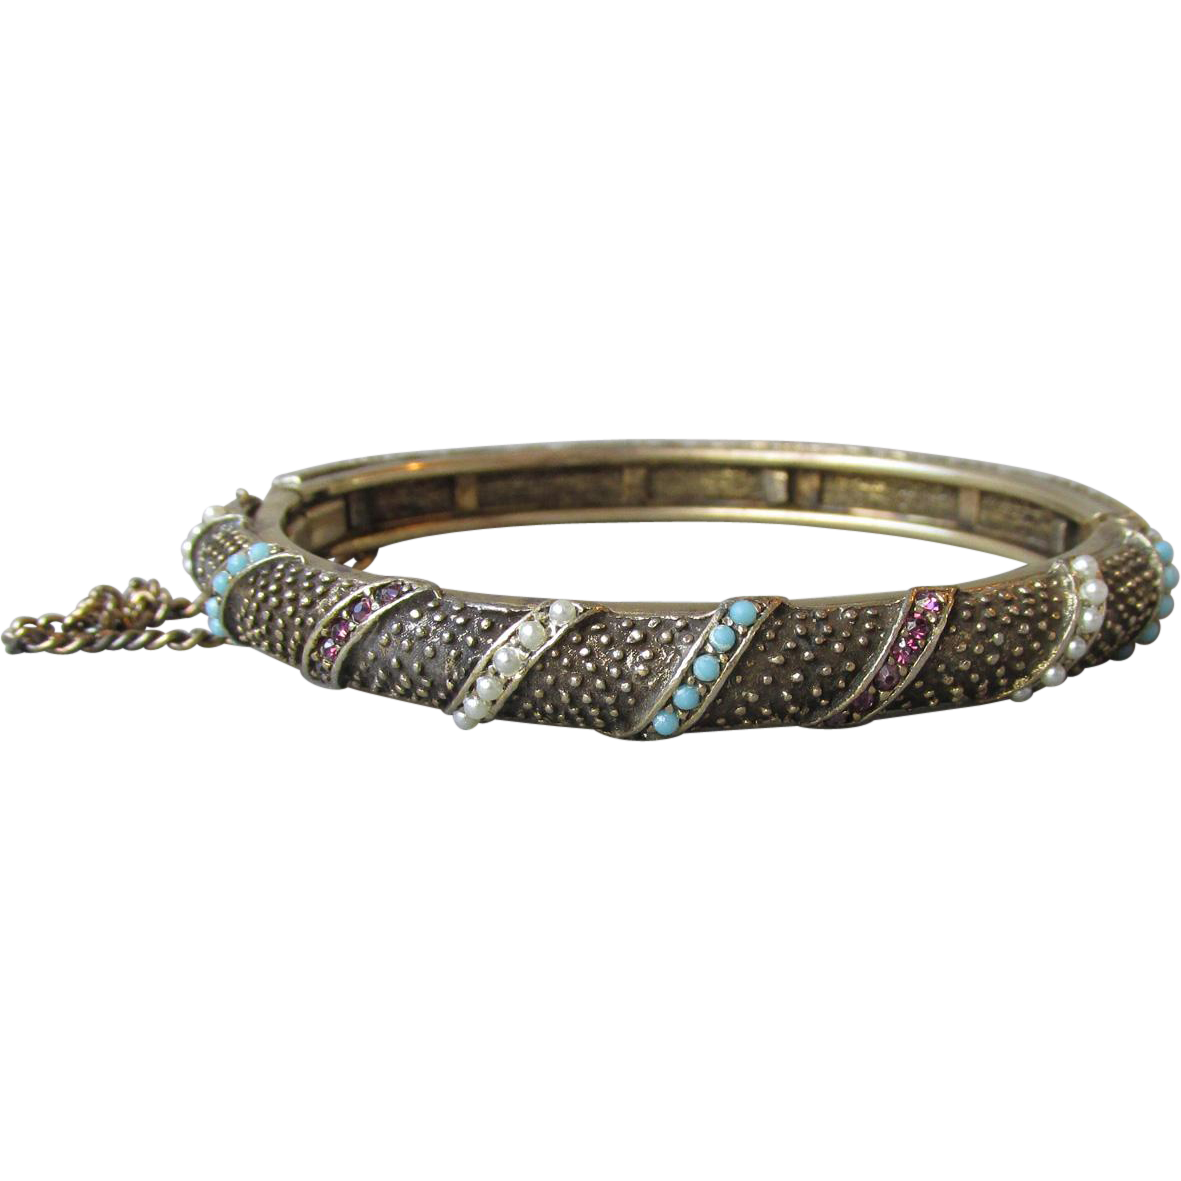 1960's Hinged Bangle Bracelet with Faux Turquoise, Seed Pearls & Garnets